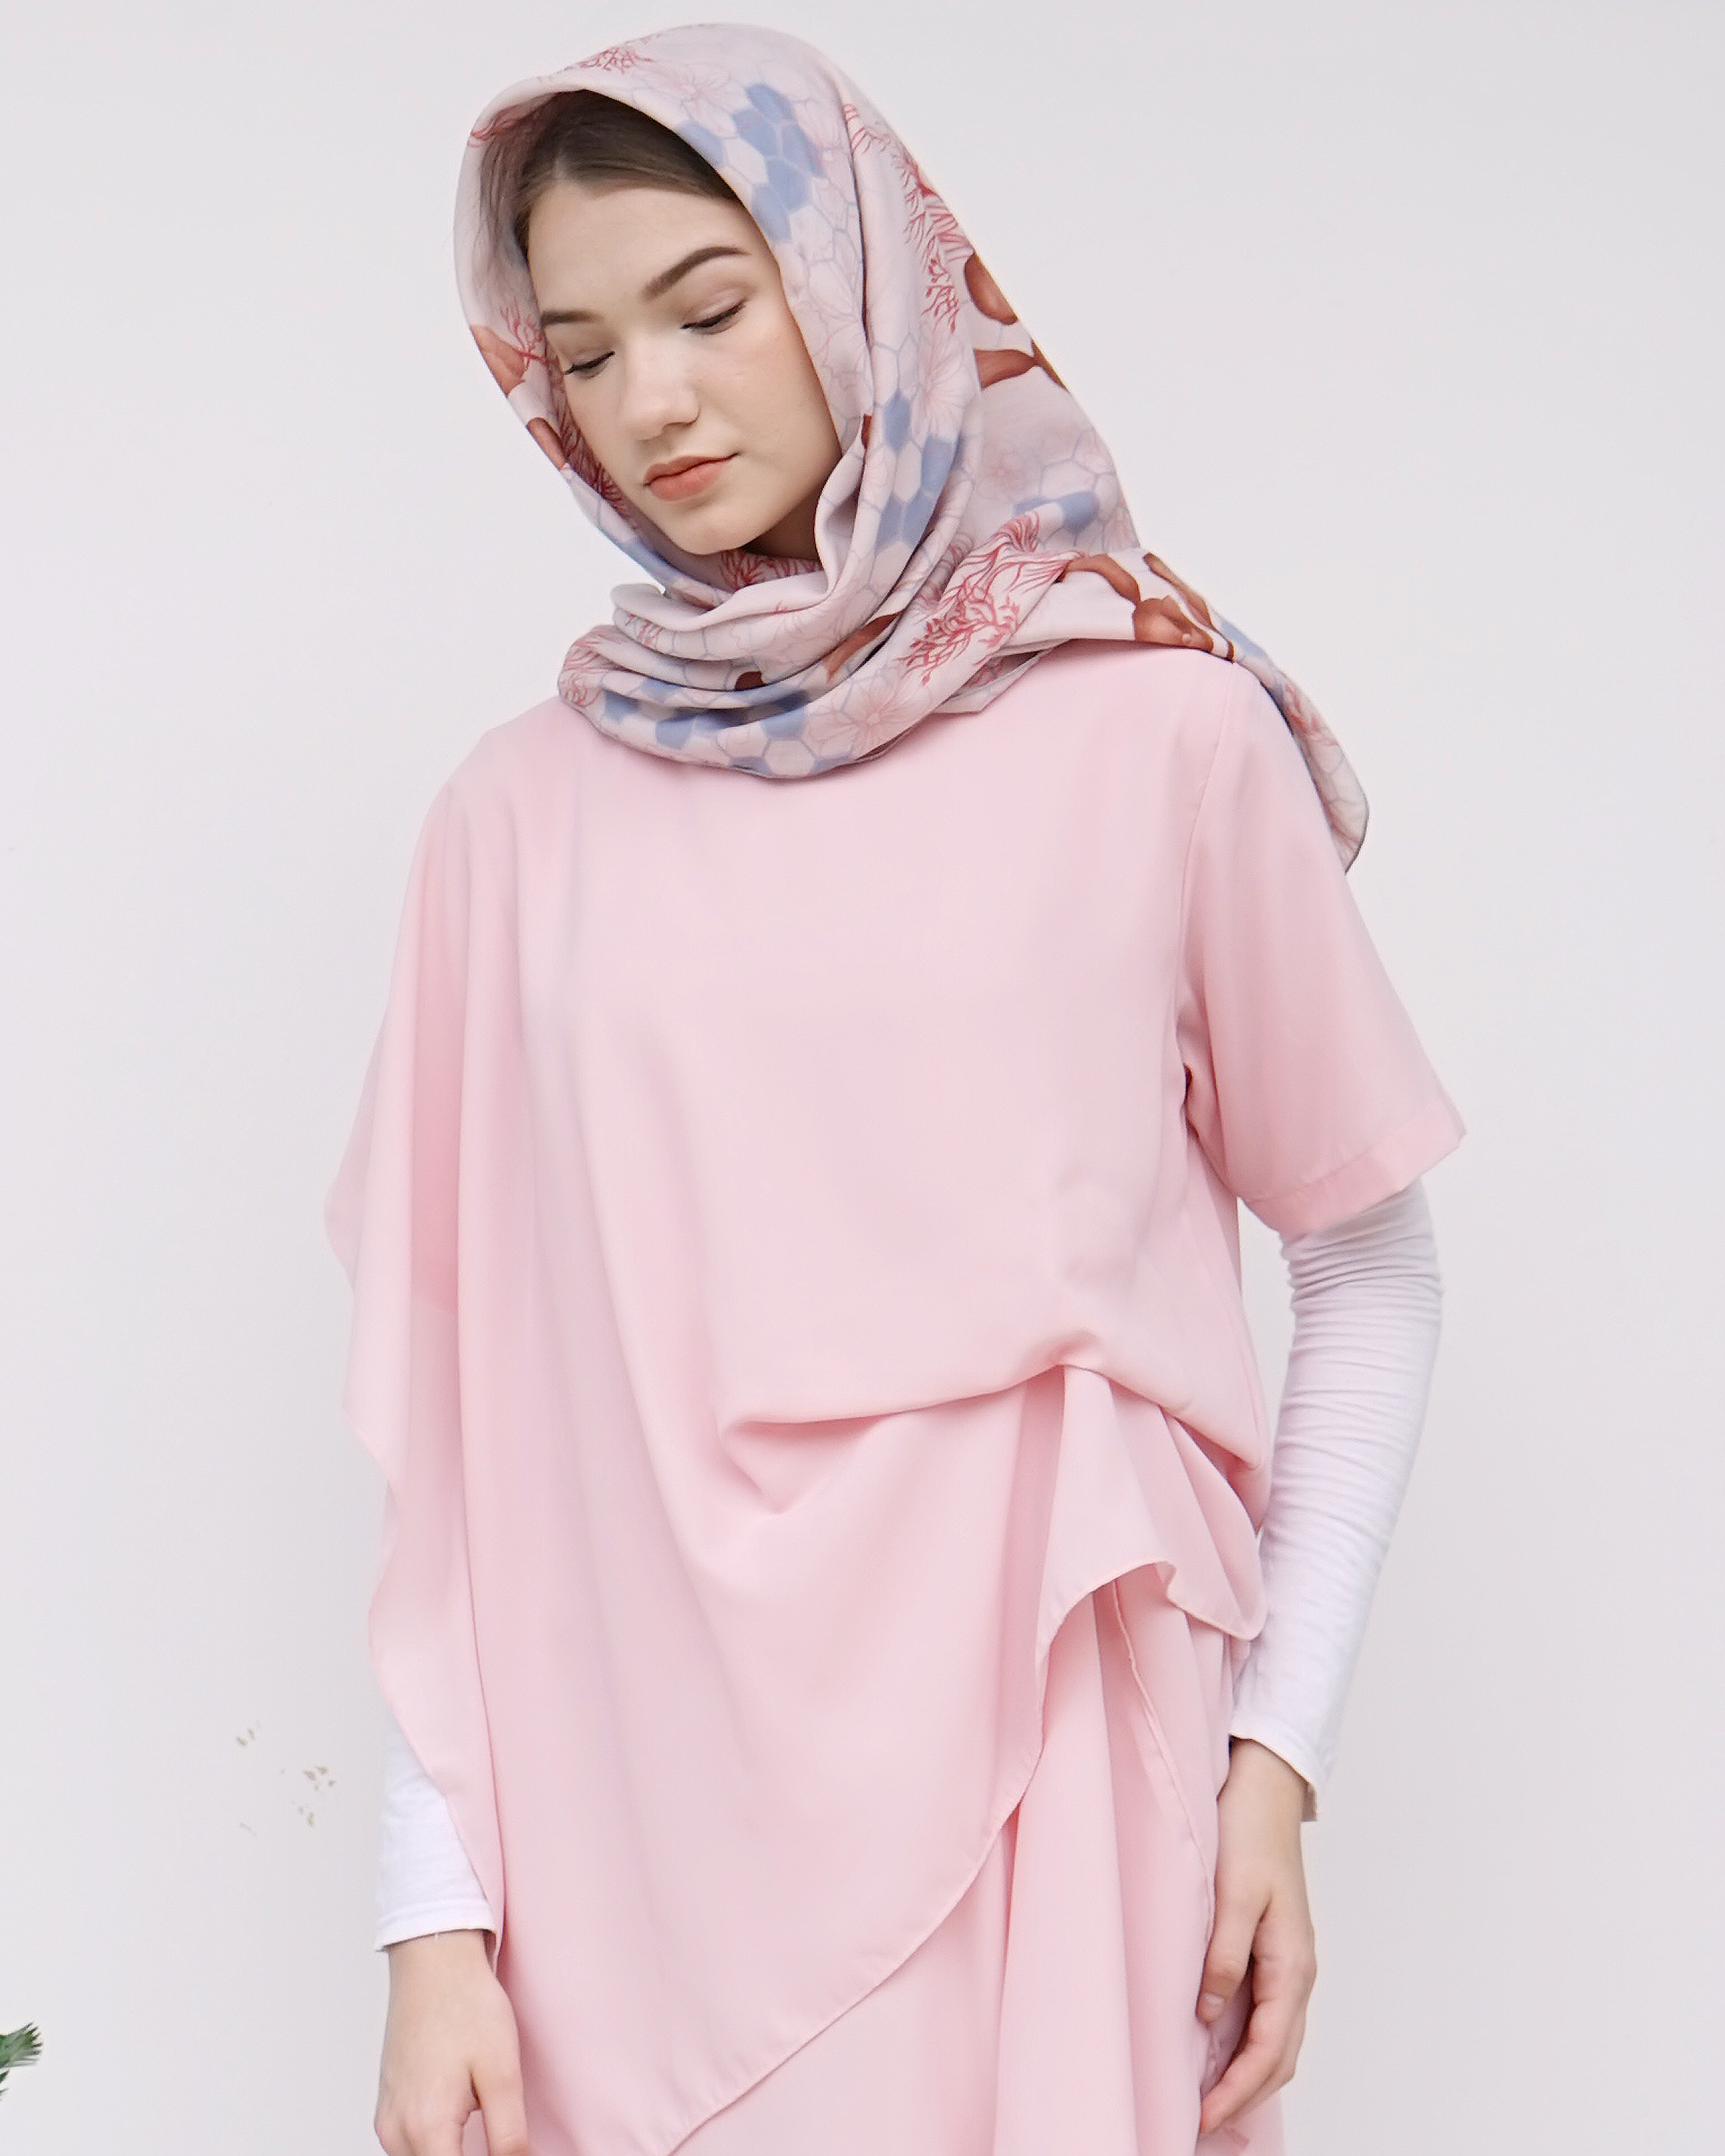 INSPIRASI OUTFIT BUKBER SIMPLE DAN STYLISH image